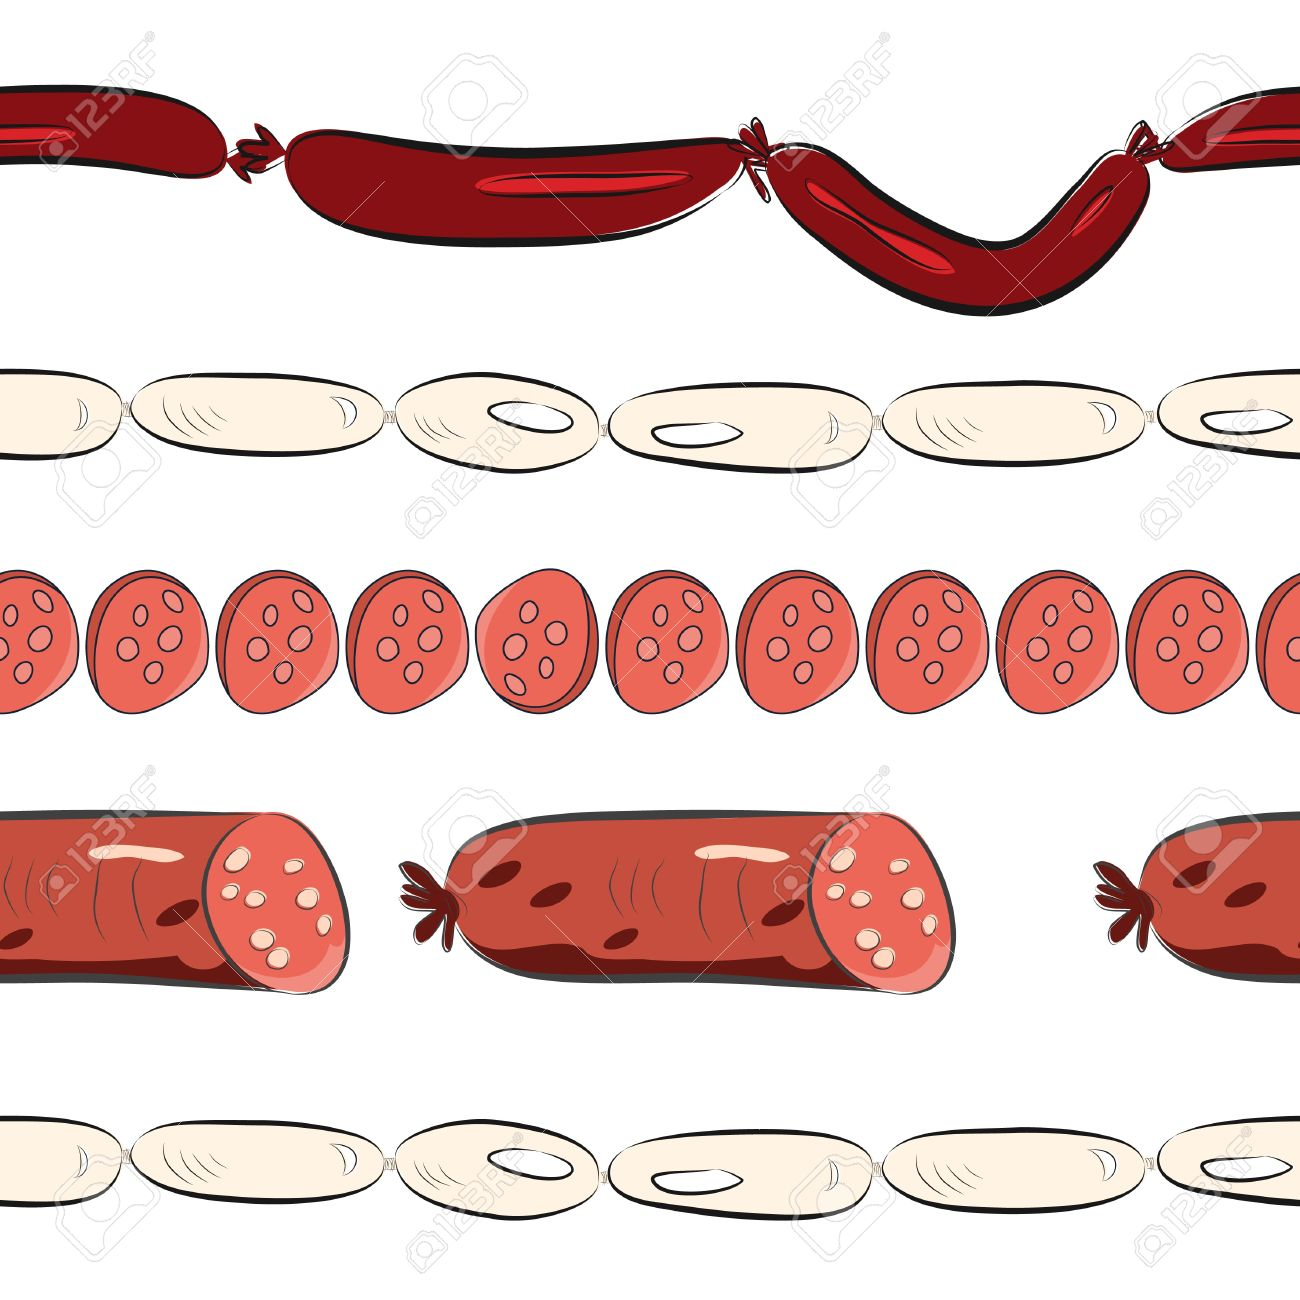 Seamless Wallpaper With Sausages Royalty Cliparts Vectors 1300x1300